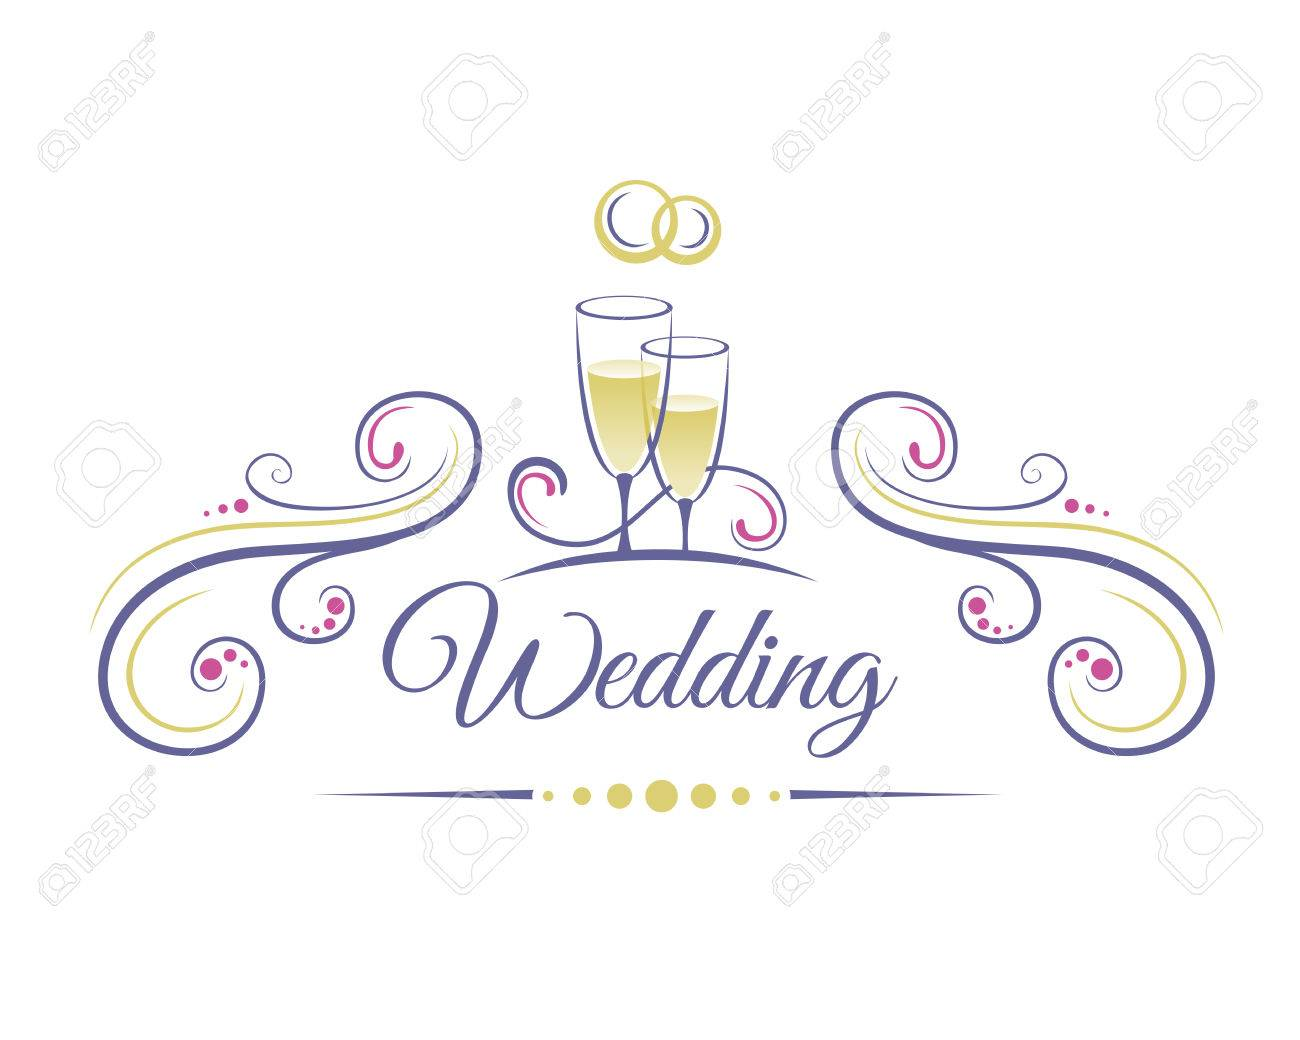 Wedding decoration with two glasses of champagne and wedding wedding decoration with two glasses of champagne and wedding rings stock vector 43153771 junglespirit Image collections